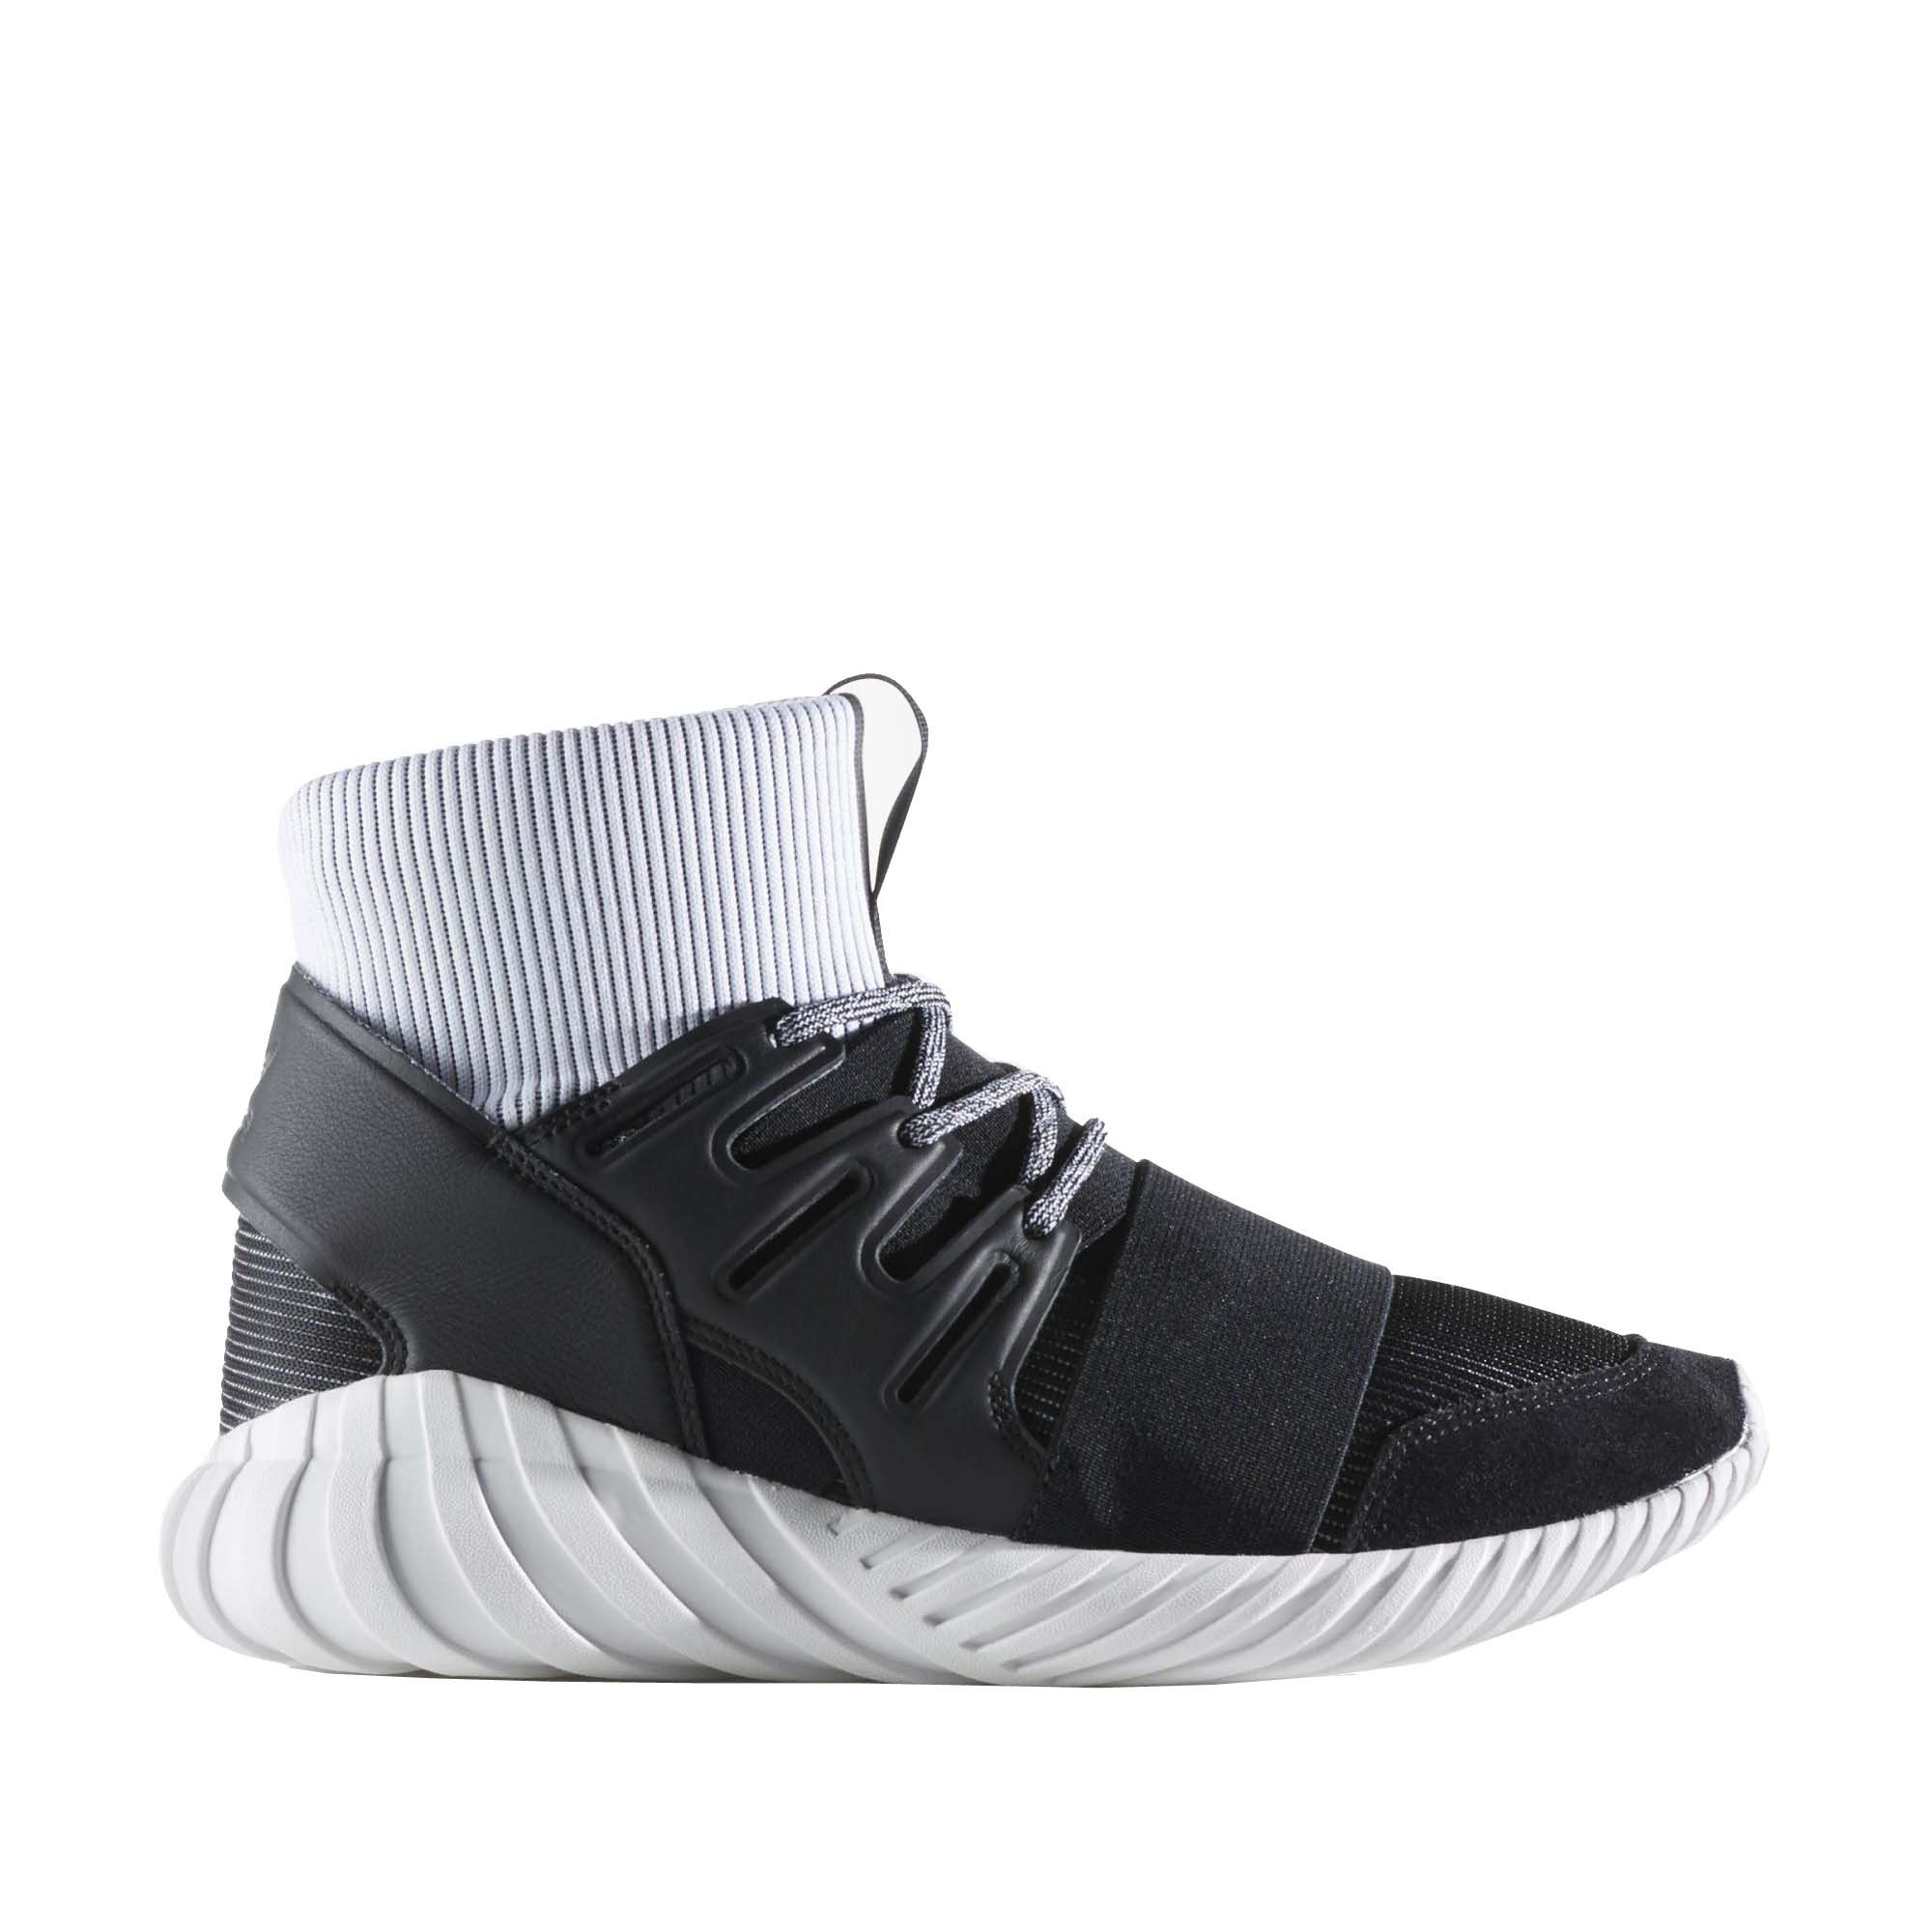 ADIDAS TUBULAR DOOM (BLACK/WHITE) - $200.00 CAD